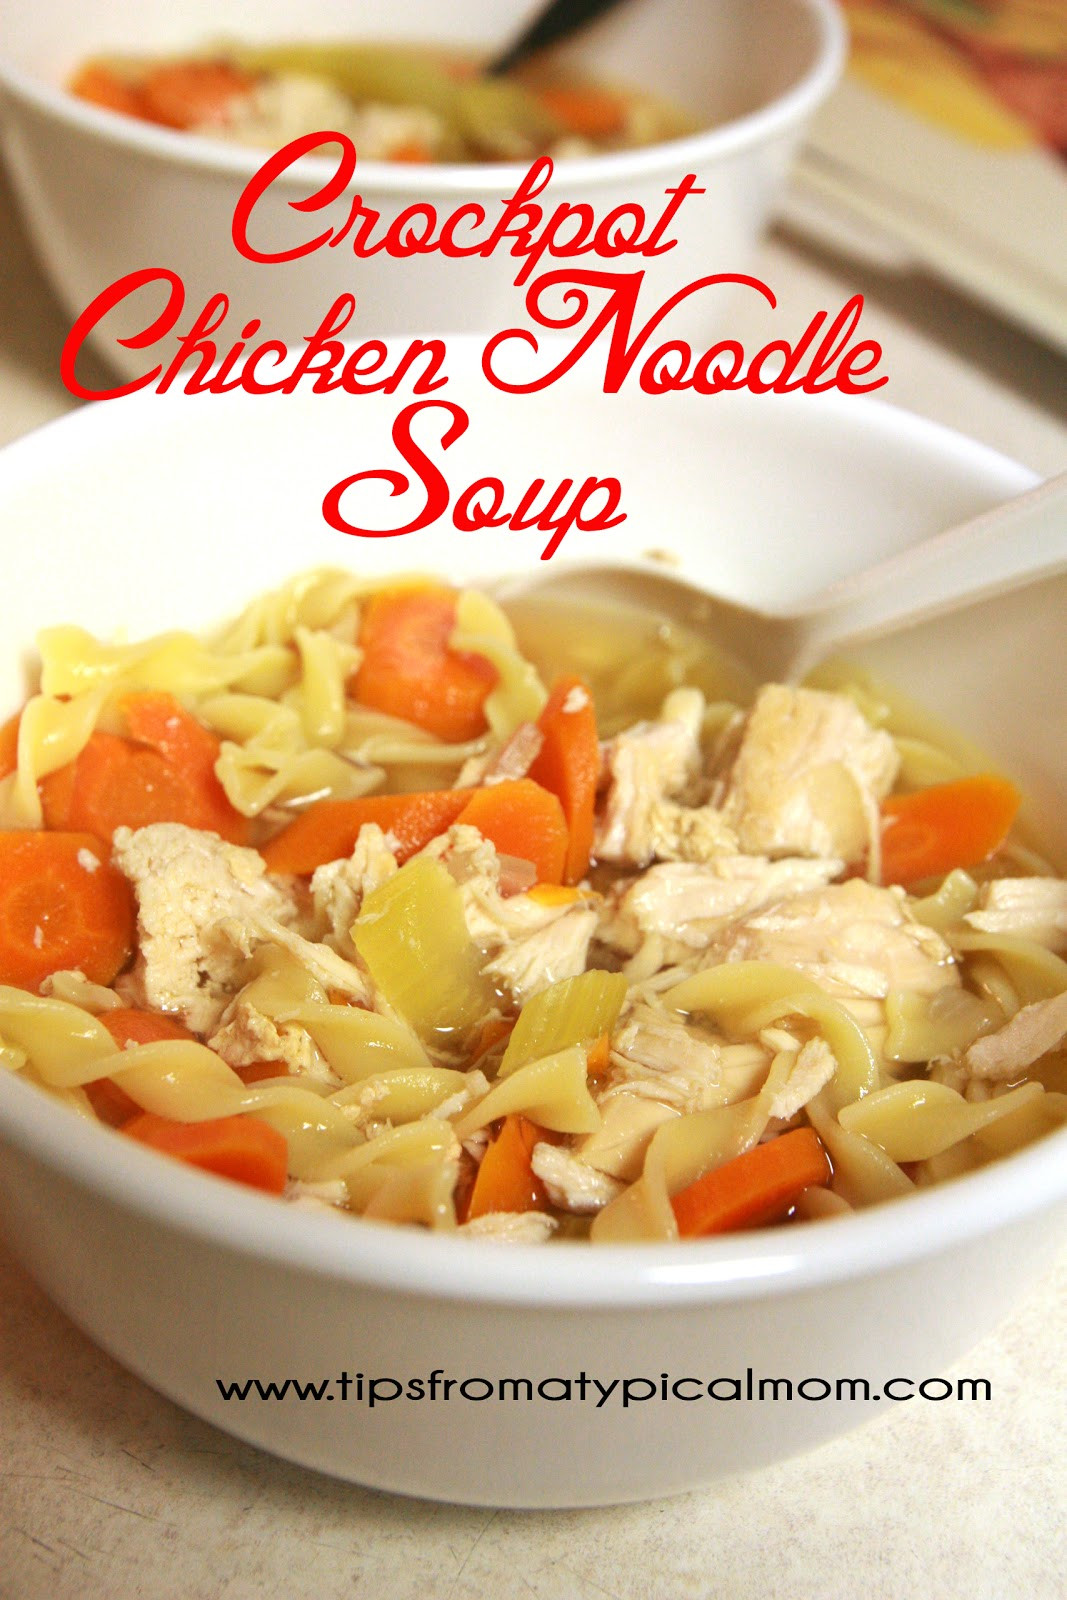 Swanson Chicken Noodle Soup  Crockpot Chicken Noodle Soup Recipe Tips from a Typical Mom